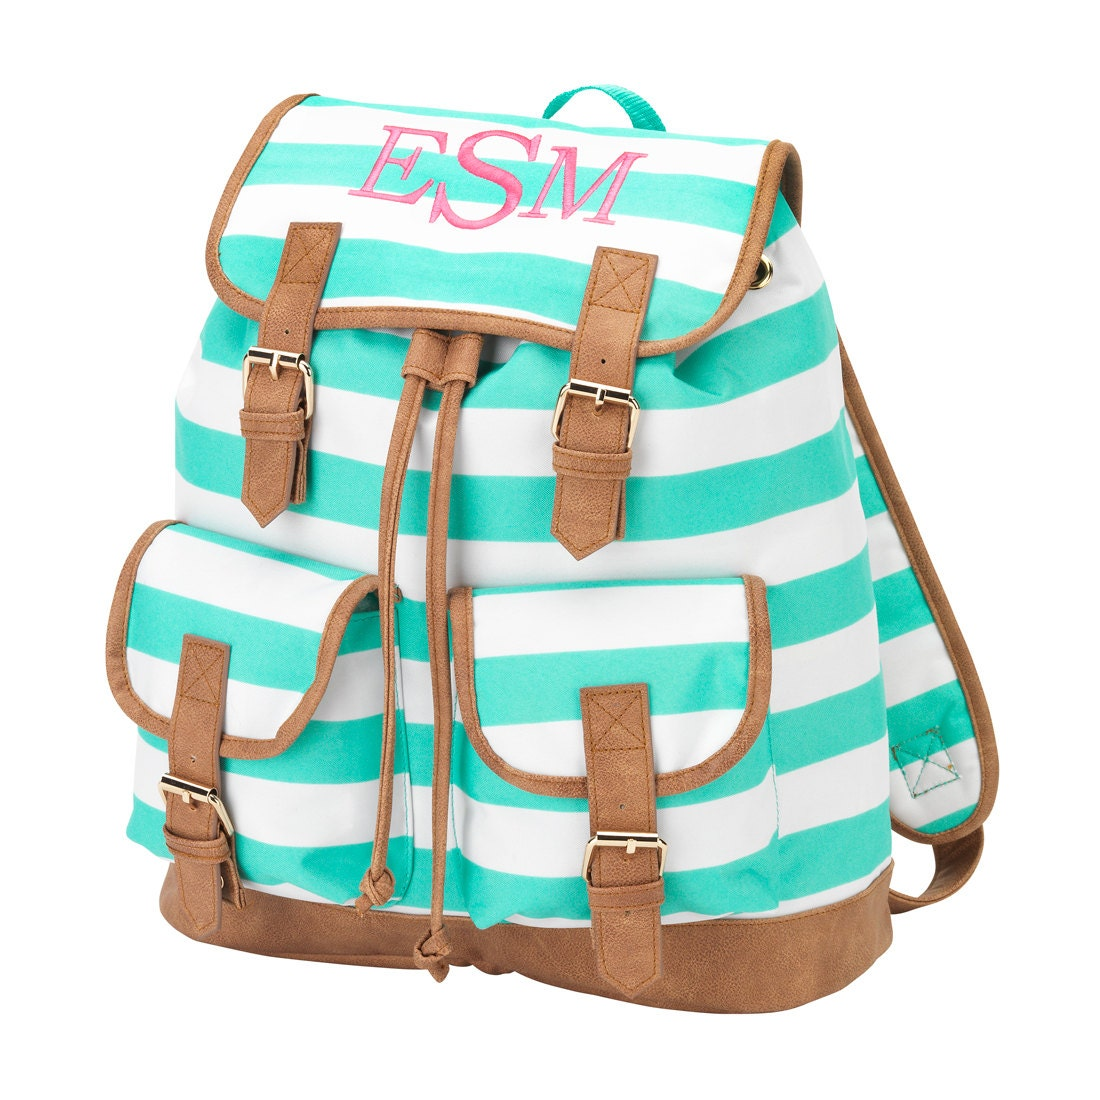 Where To Get Cute Backpacks For Middle School - Crazy Backpacks